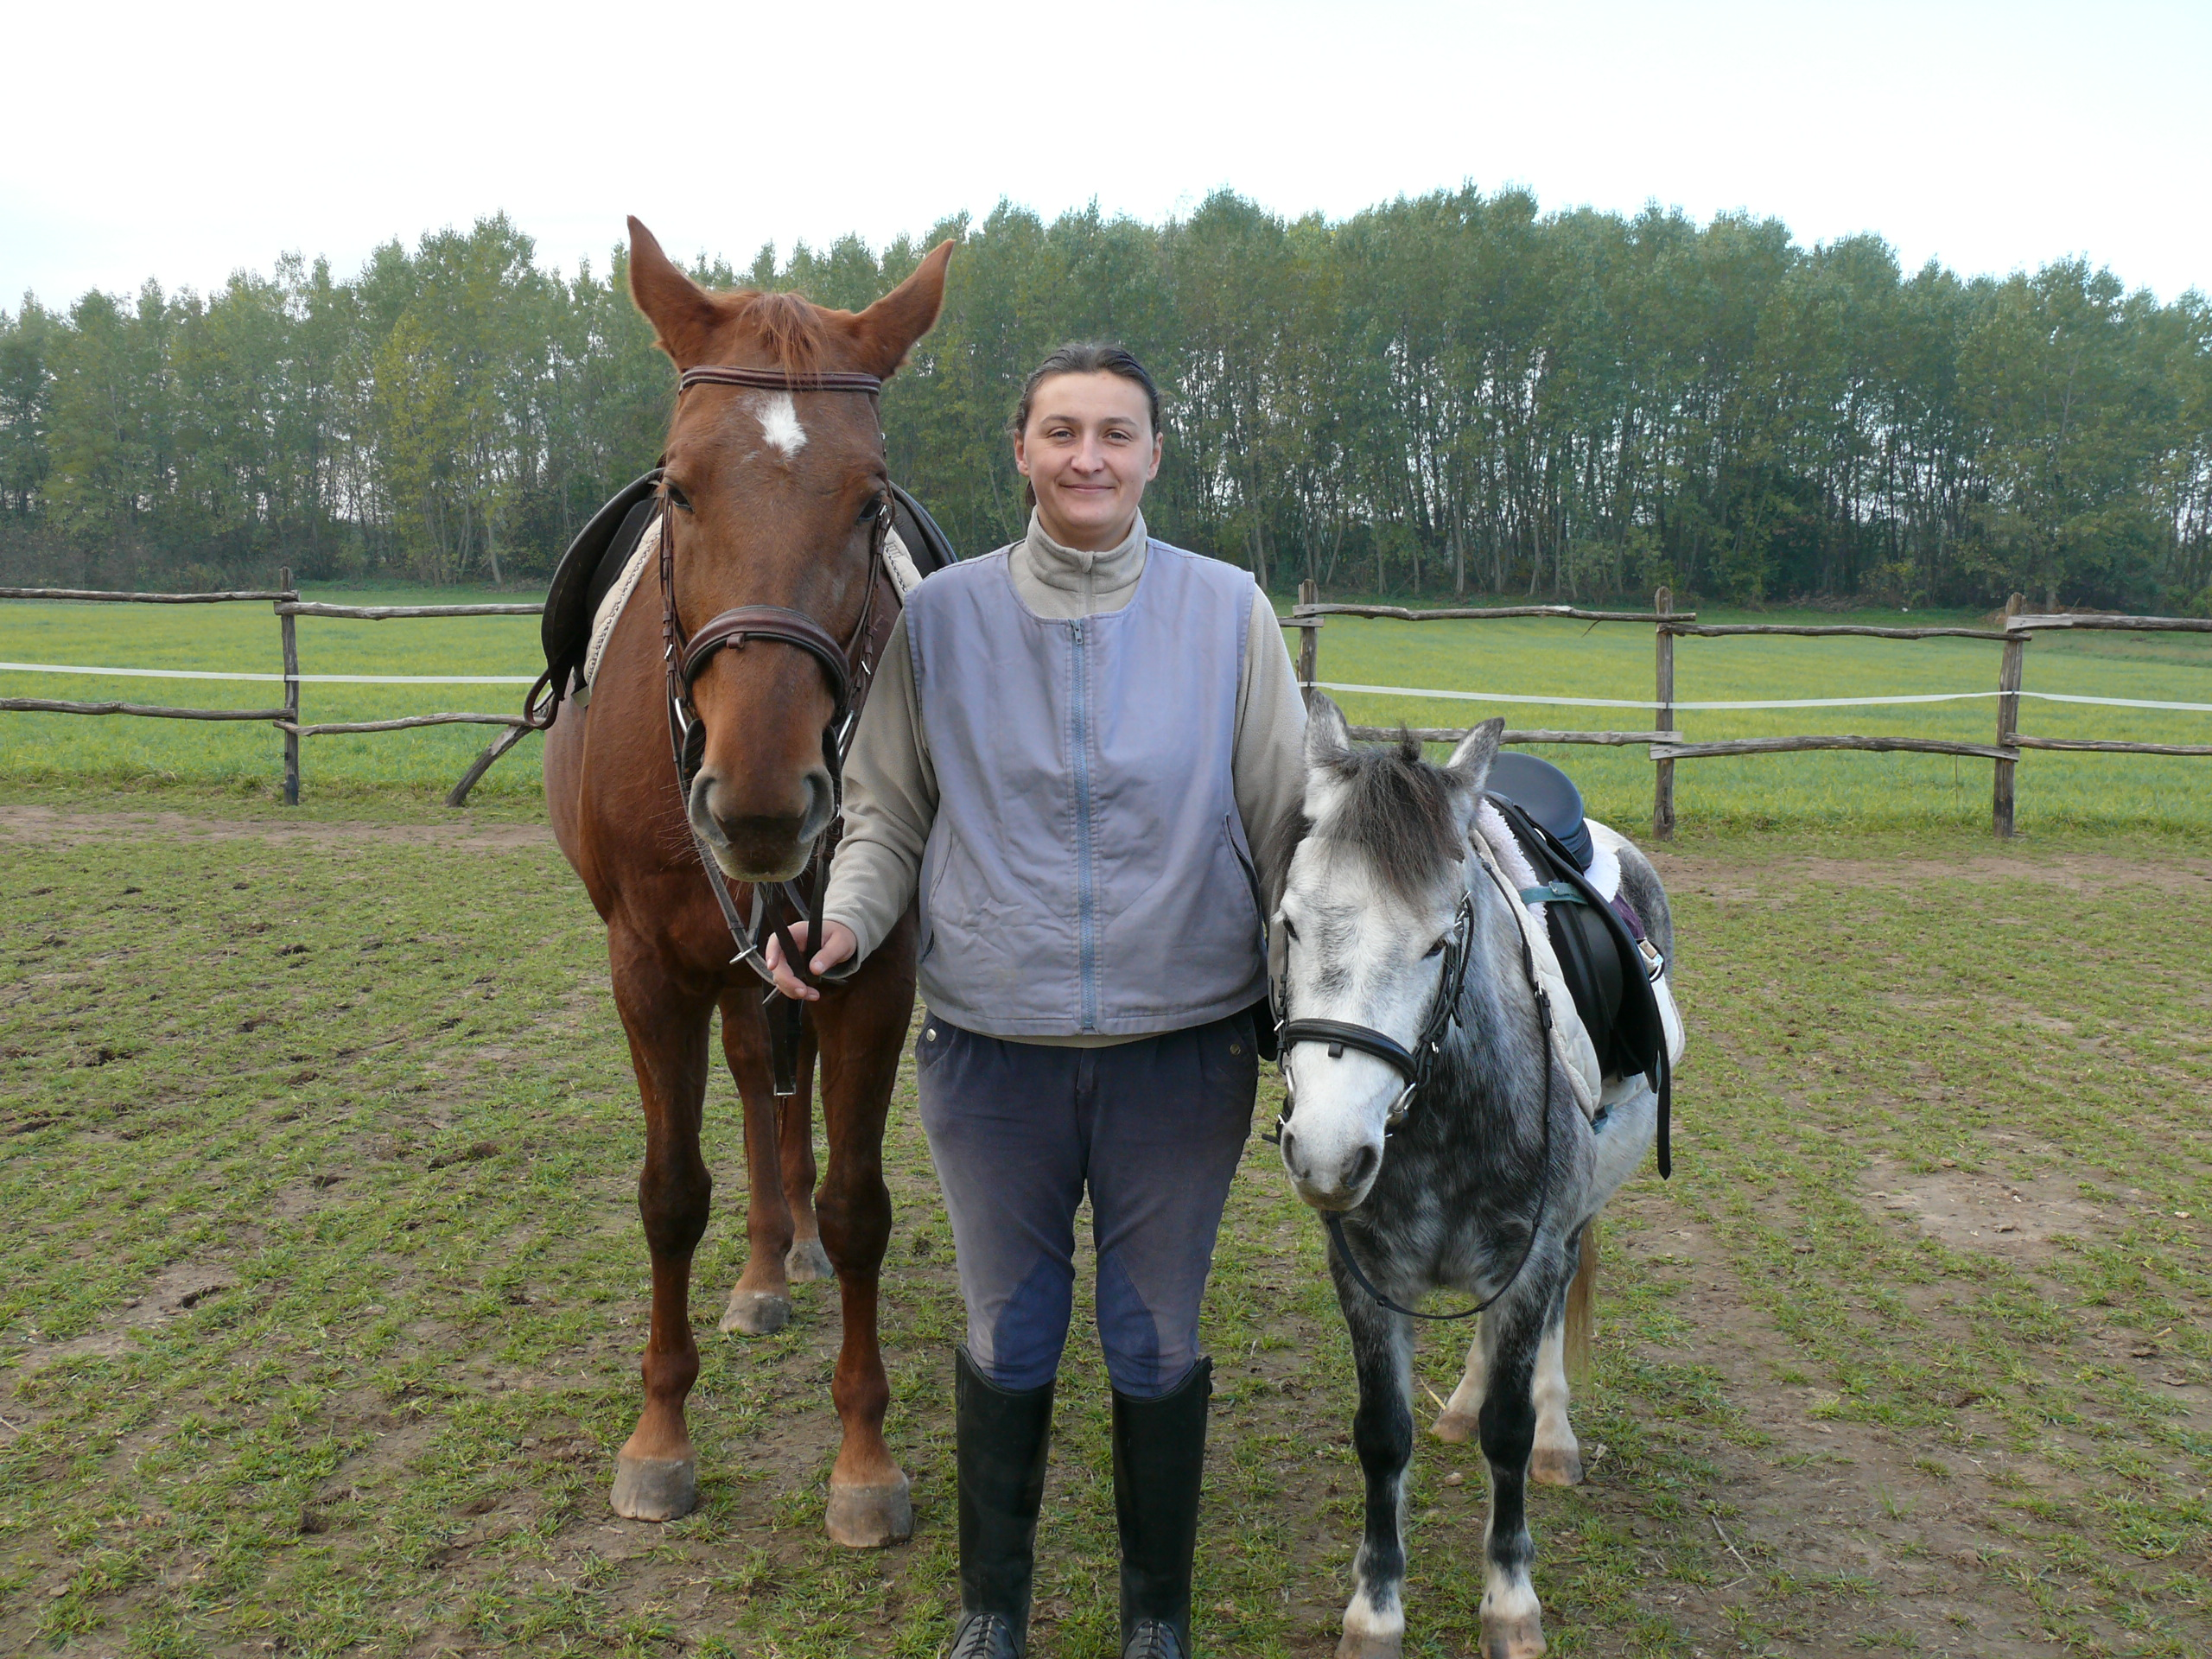 Adél with the two therapy horses: Barbie and Dolly